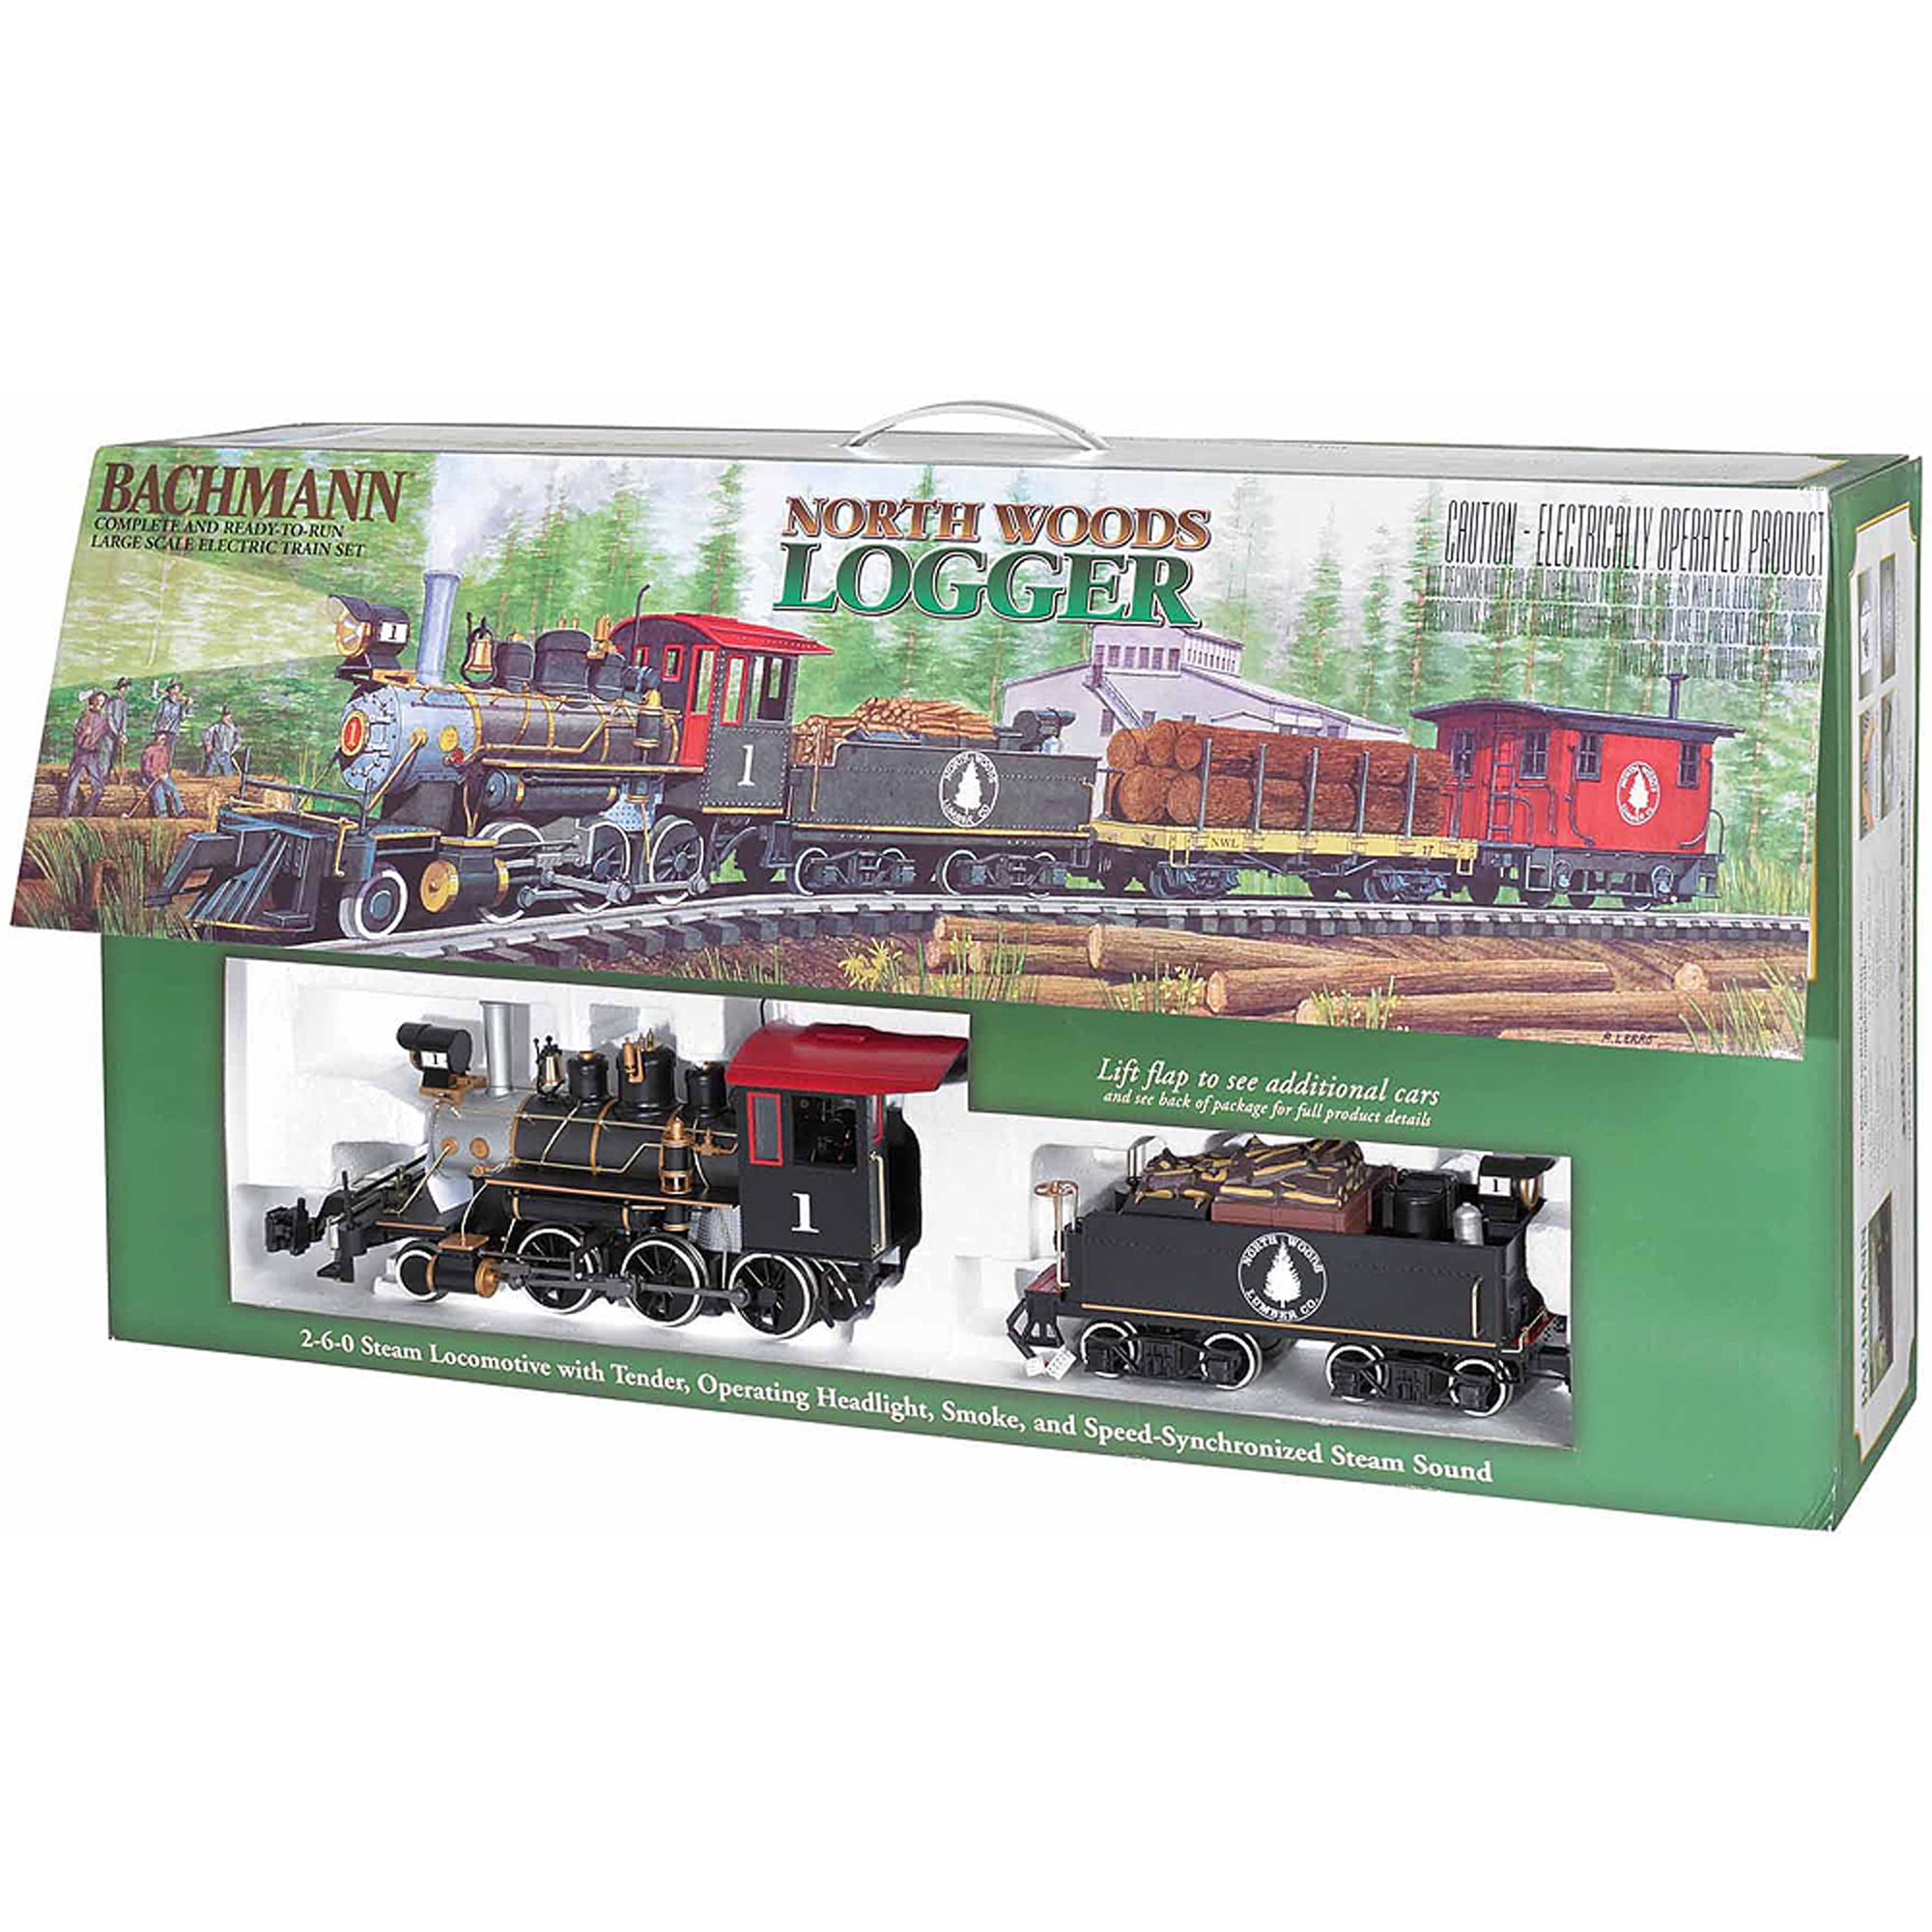 Bachmann Large Scale North Woods Logger Electric Train Set by Heaven and Earth Designs